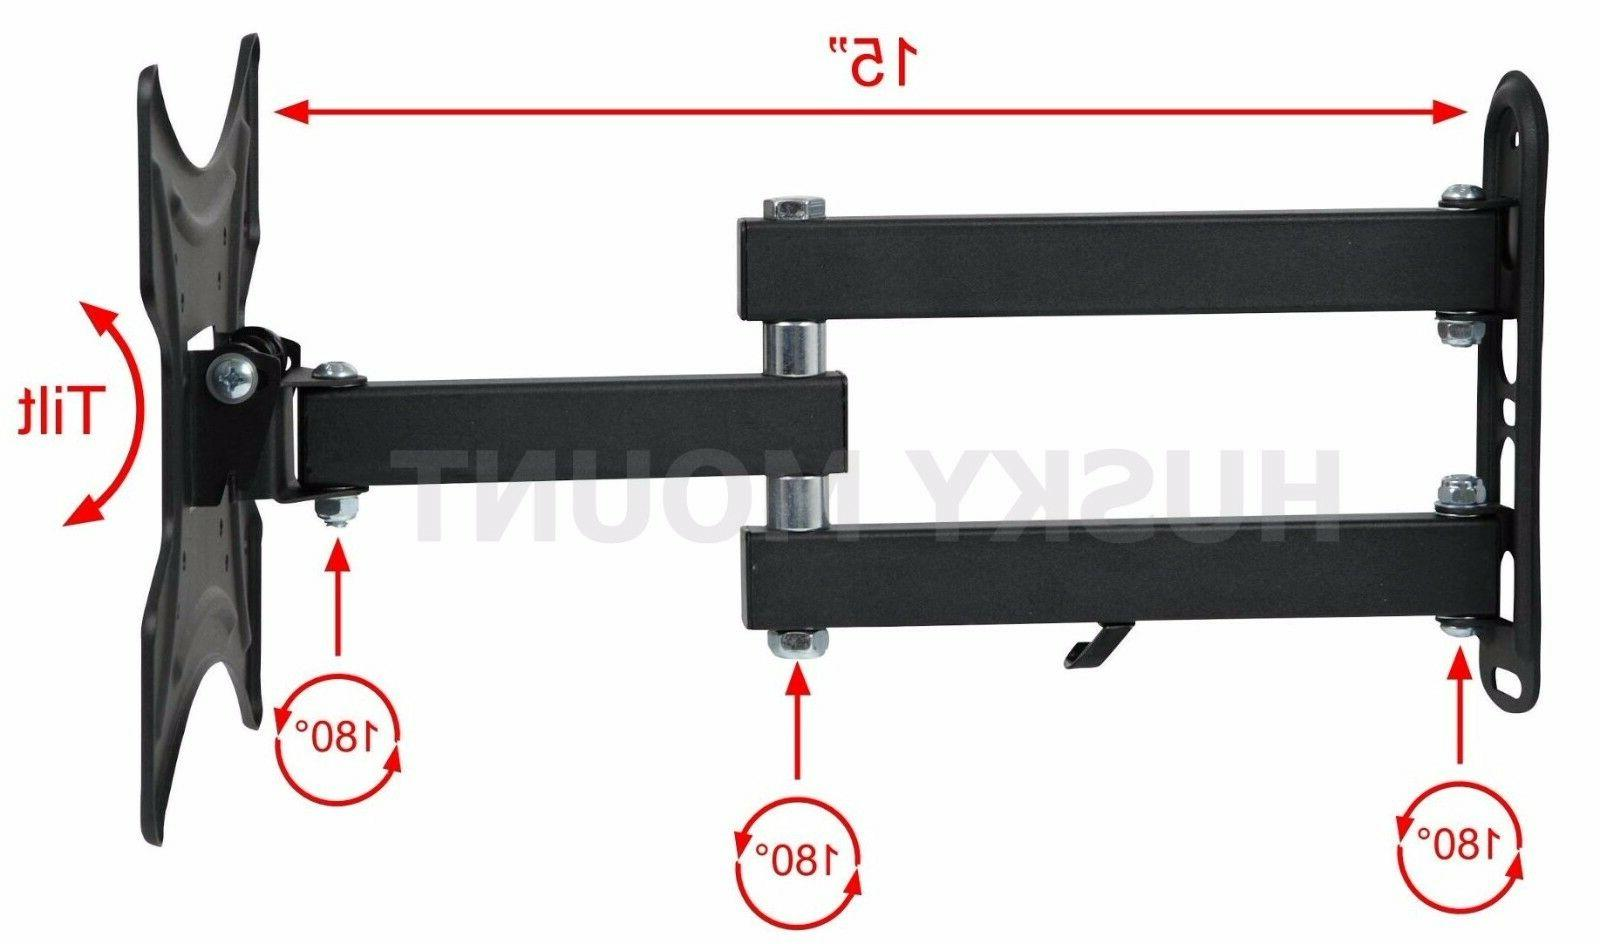 Full TV Wall Mount Articulating 24 32 37 40 Inch LED LCD